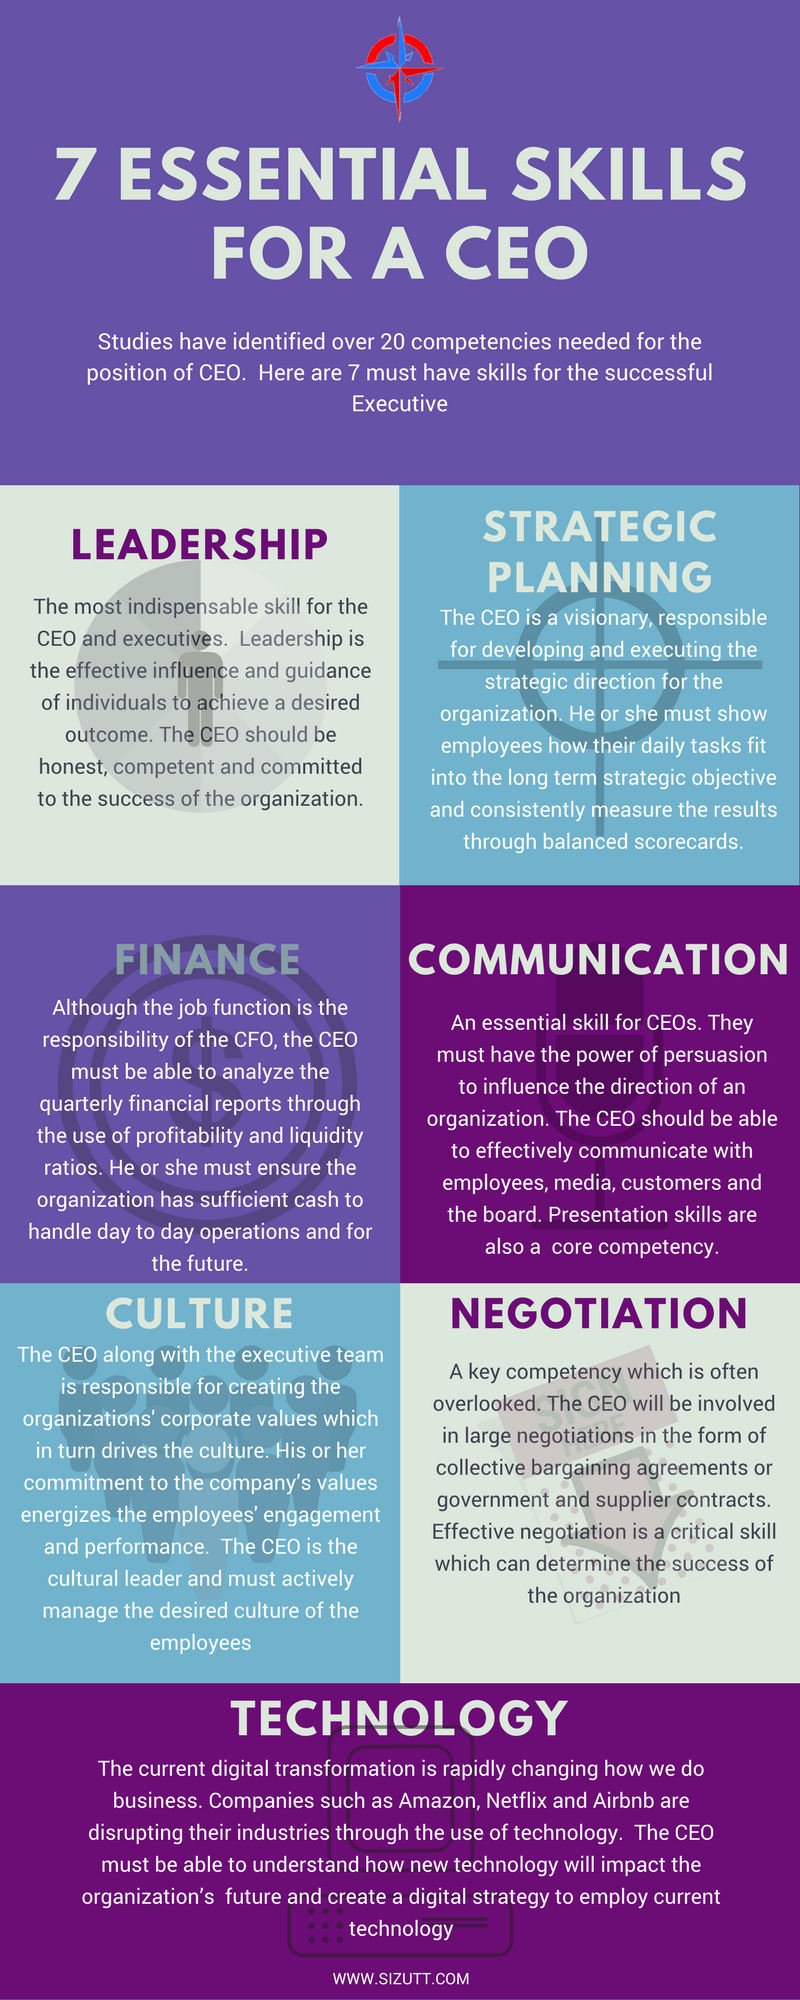 are you ceo ready  7 essential skills for a ceo